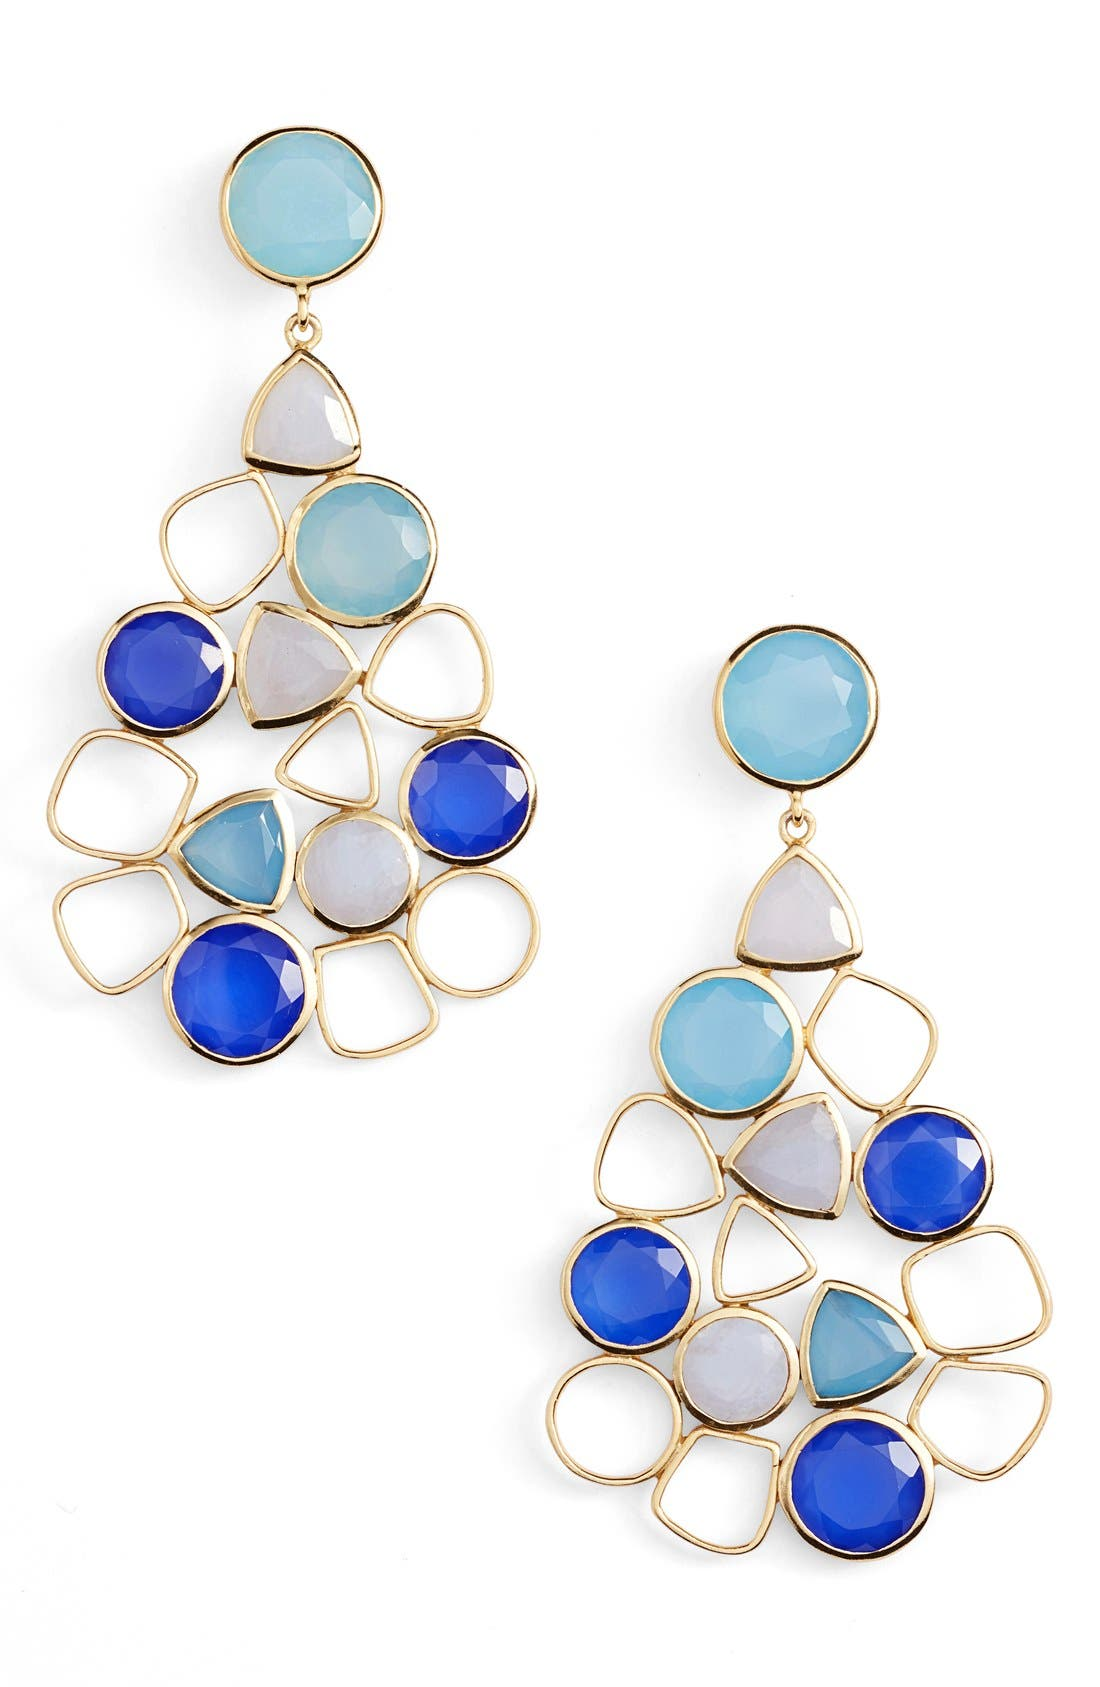 Main Image - Argento Vivo Statement Earrings